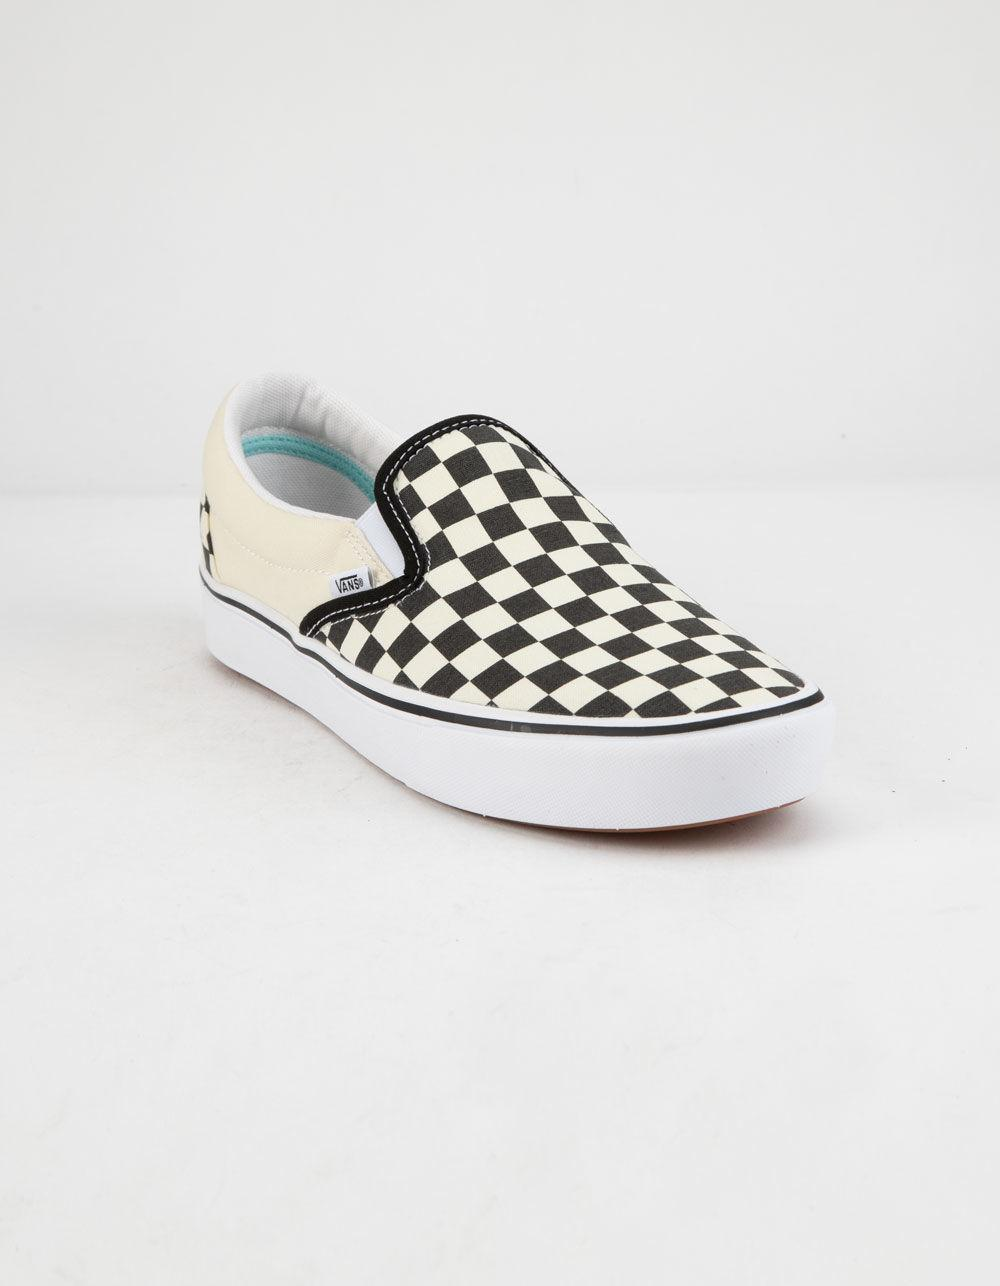 2759ac4fa9c7 Lyst - Vans Comfycush Checkerboard Classic Slip-on Shoes - Save 23%